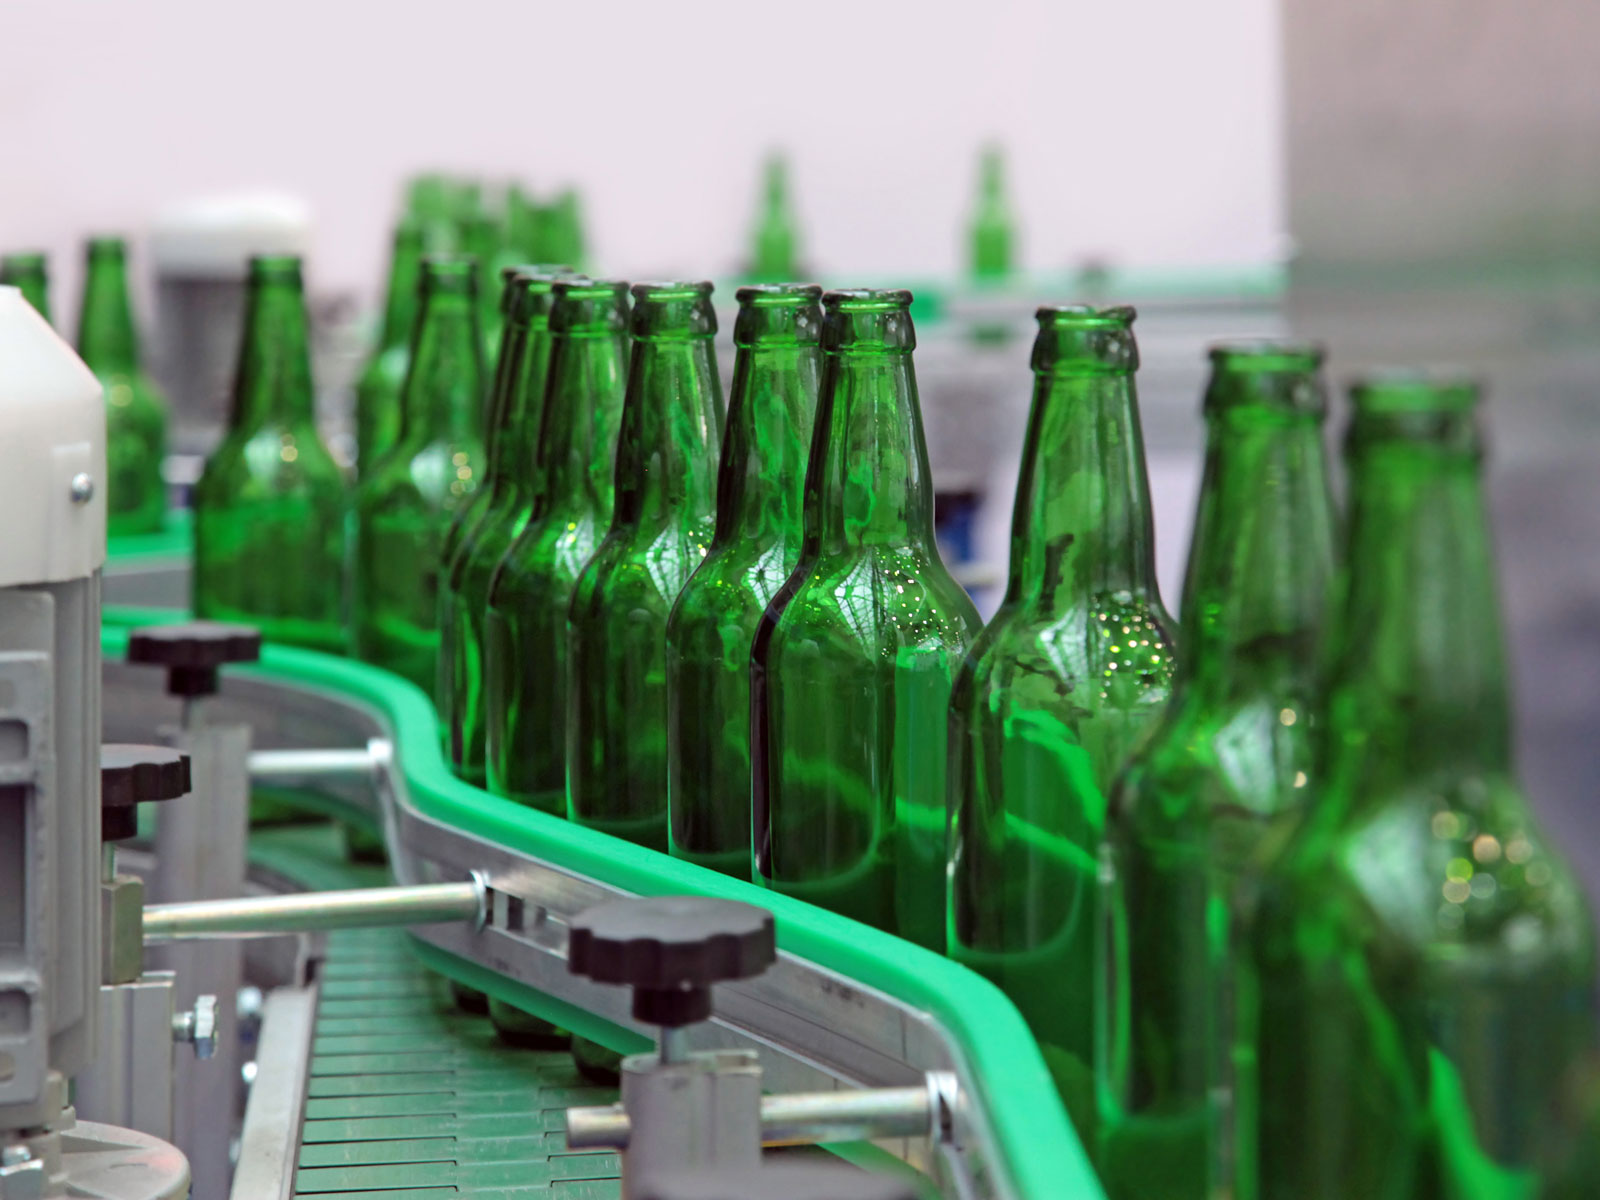 refill-beer-bottles-FT-BLOG0518.jpg